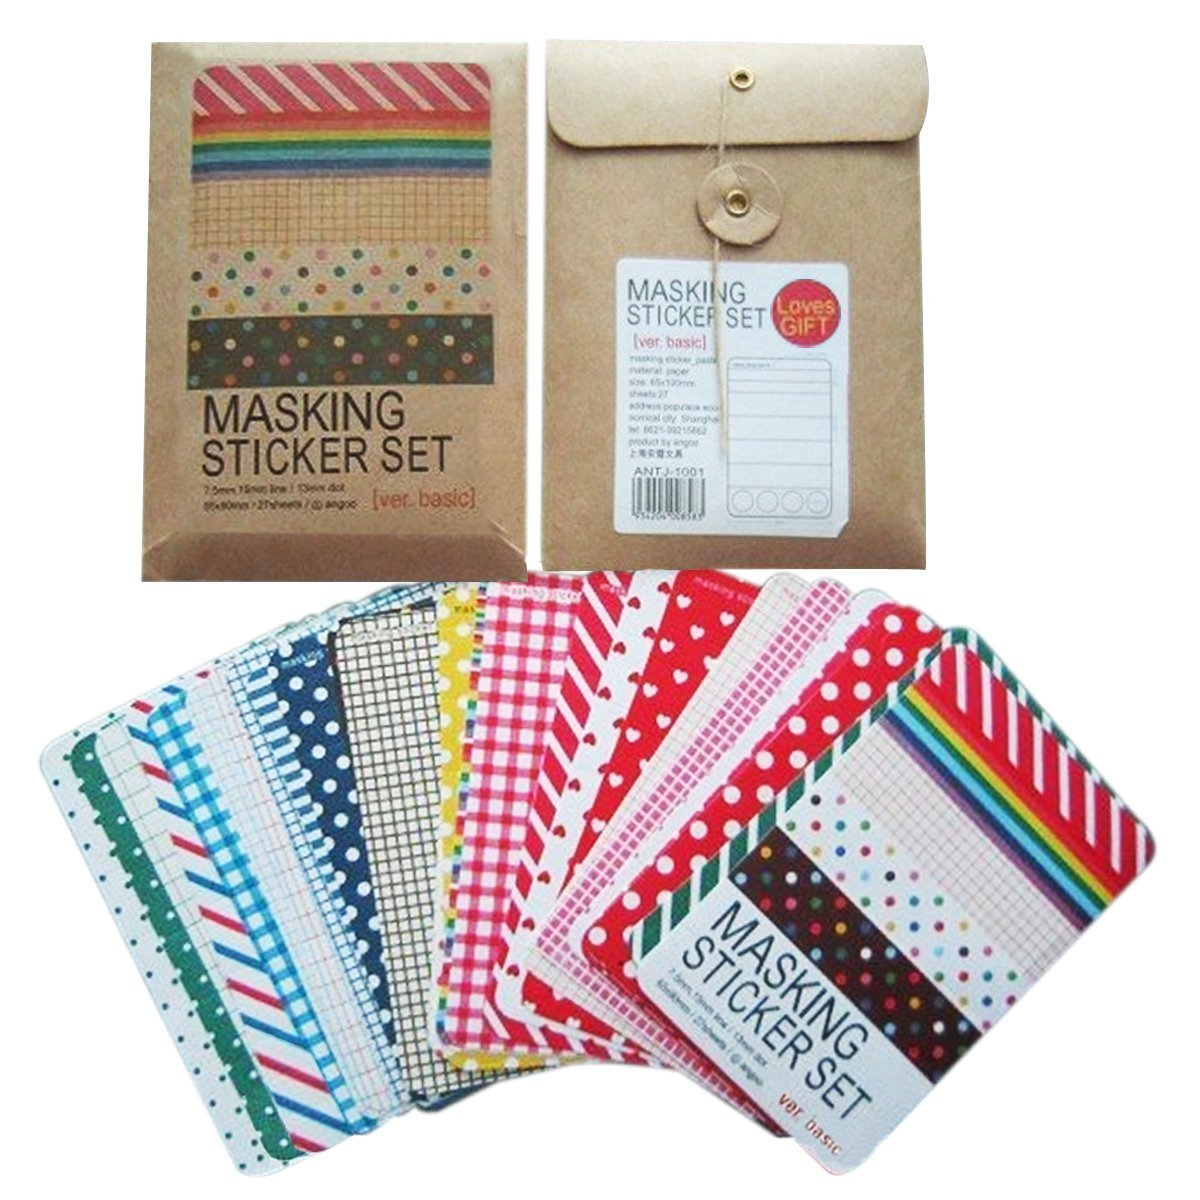 Masking Sticker Set, 27-Sheet, 3.9 by 2.5 inch 3.9 by 2.5 inch ALLYDREW 3432884